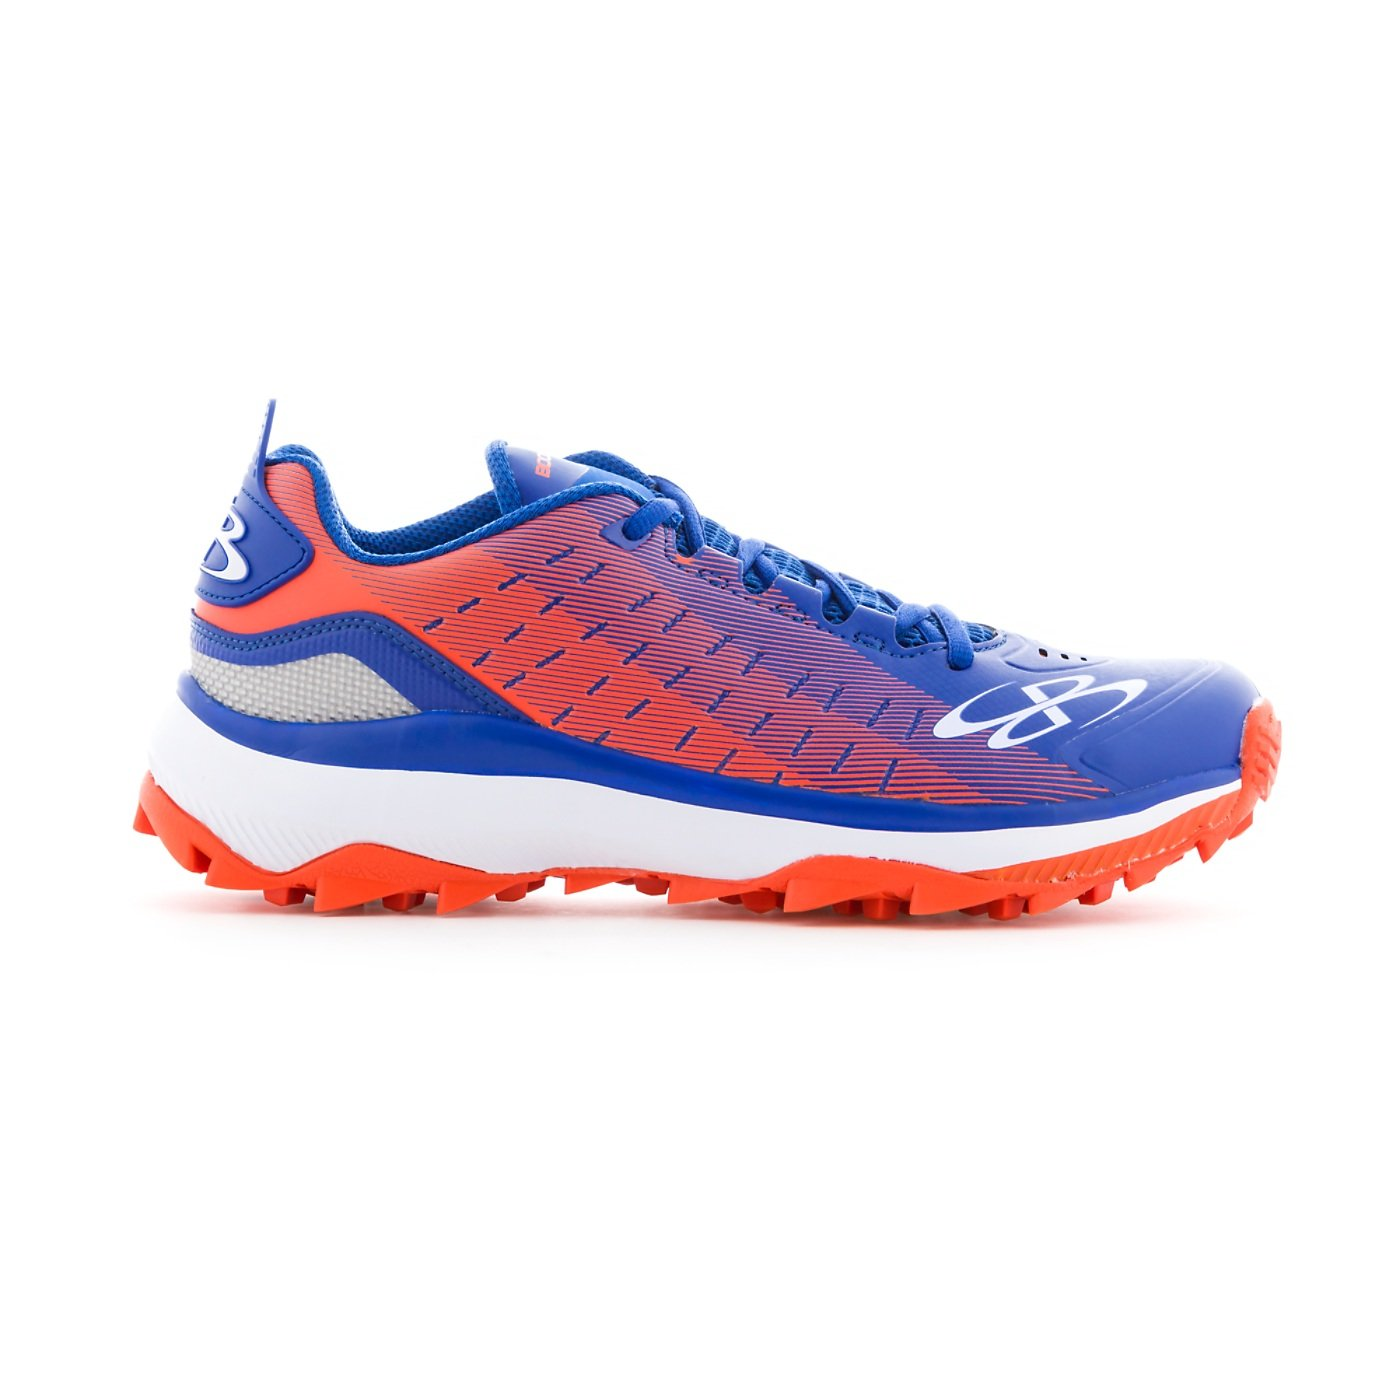 Boombah Men's Catalyst Turf Royal Blue/Orange - Size 10 by Boombah